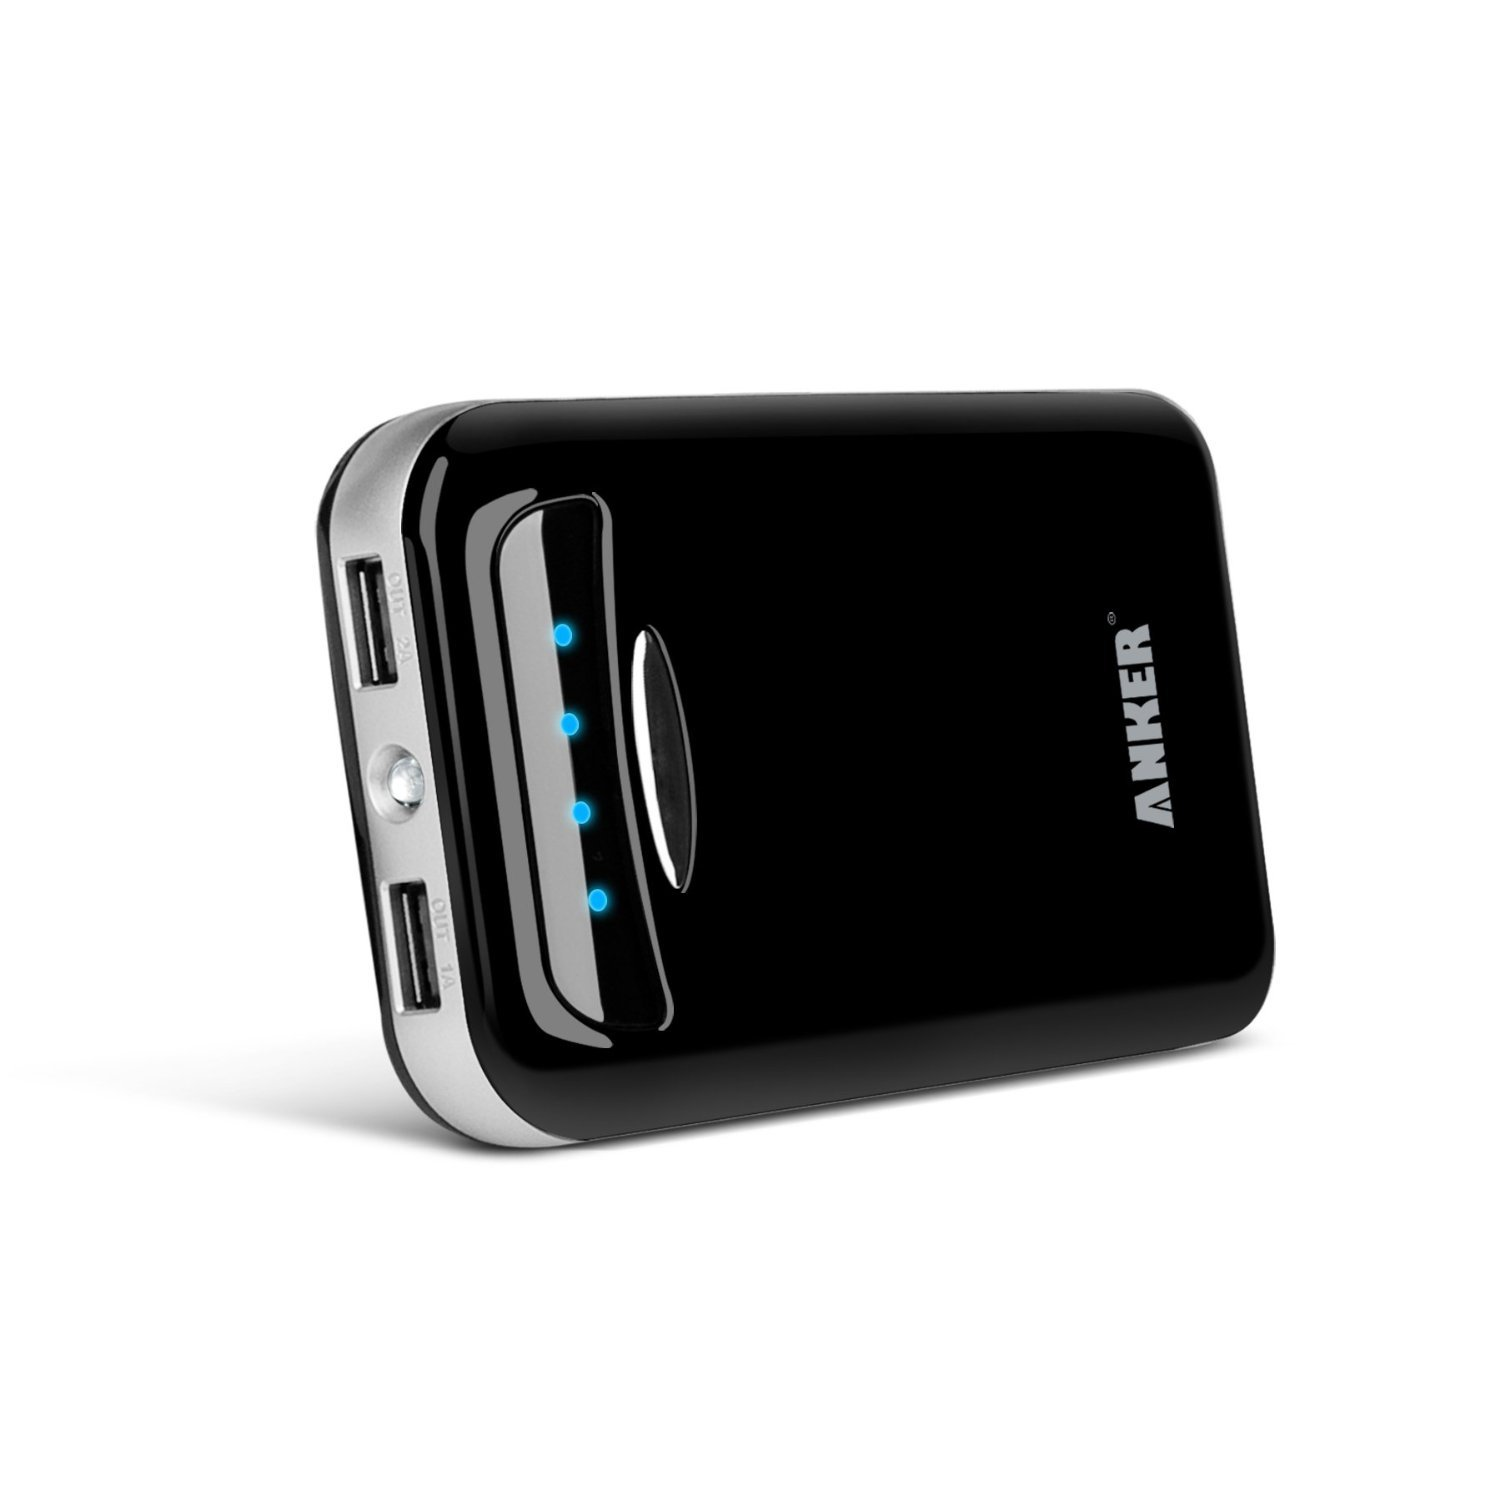 Anker E5 External Battery Charger